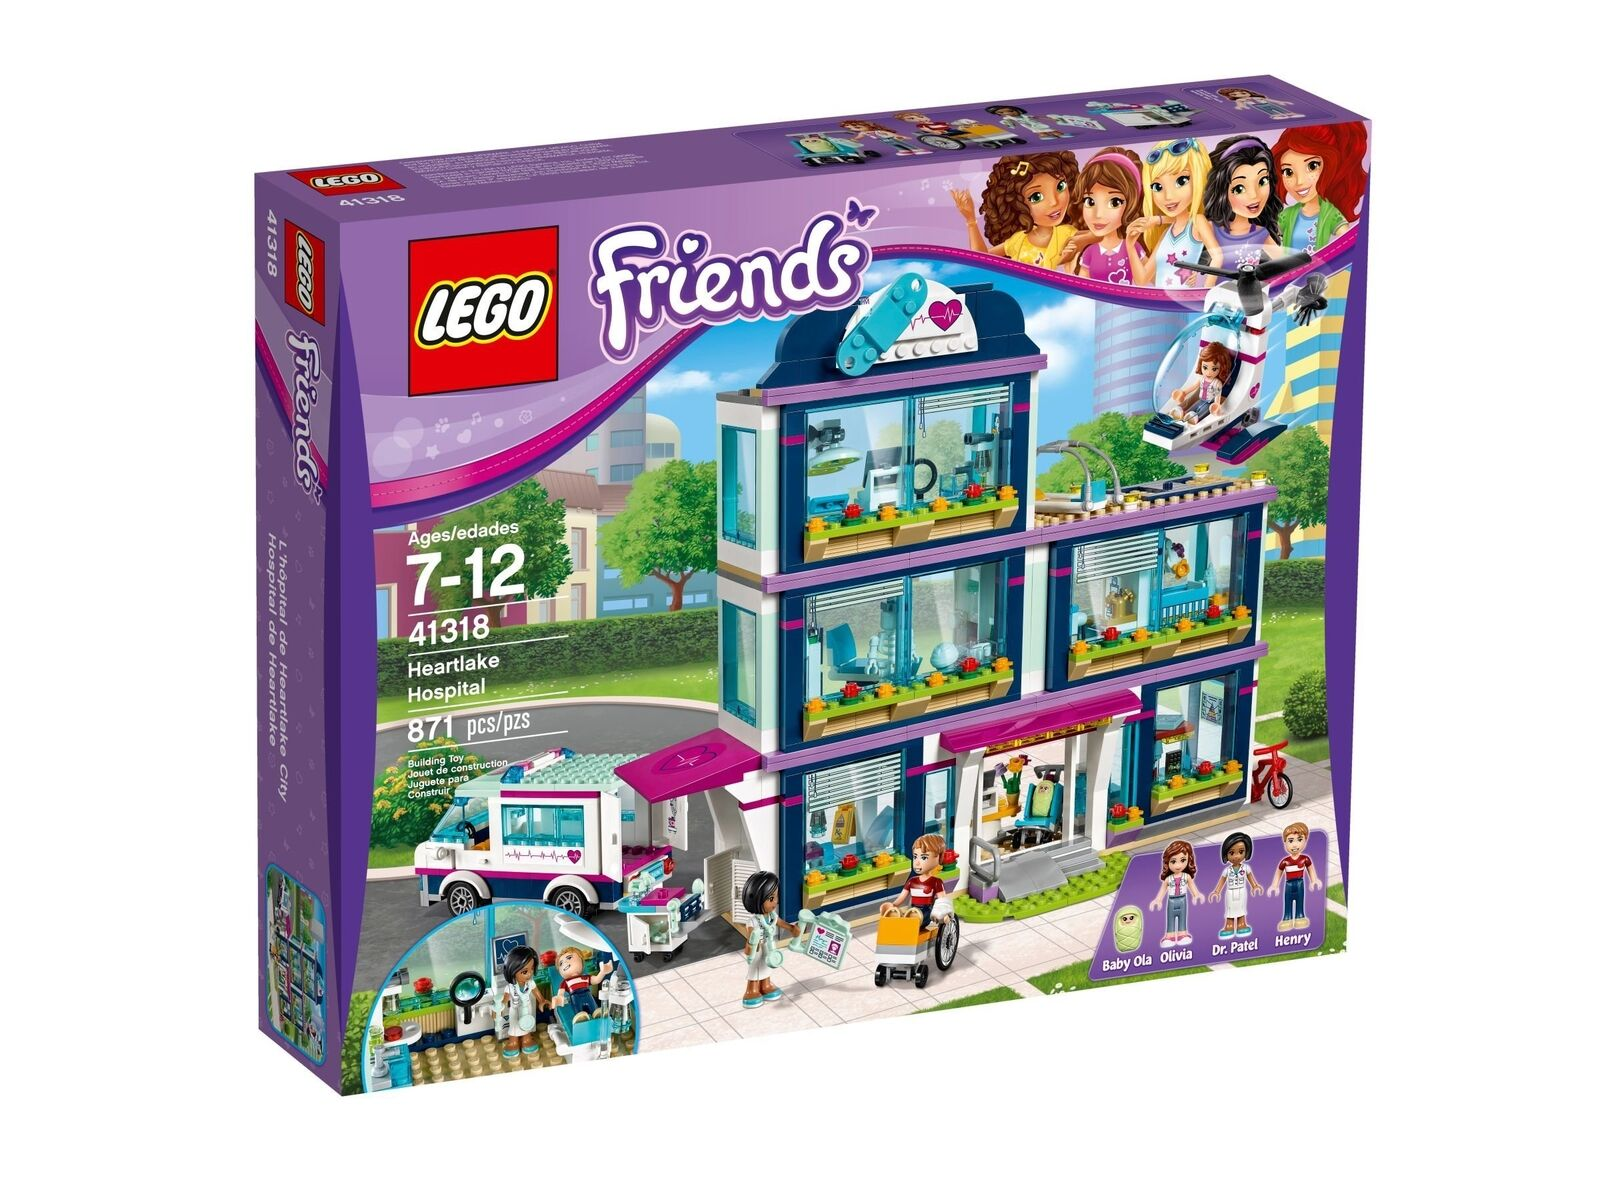 Lego Friends 41318 Heartlake Hôpital, Neuf Emballage D'Origine Misb